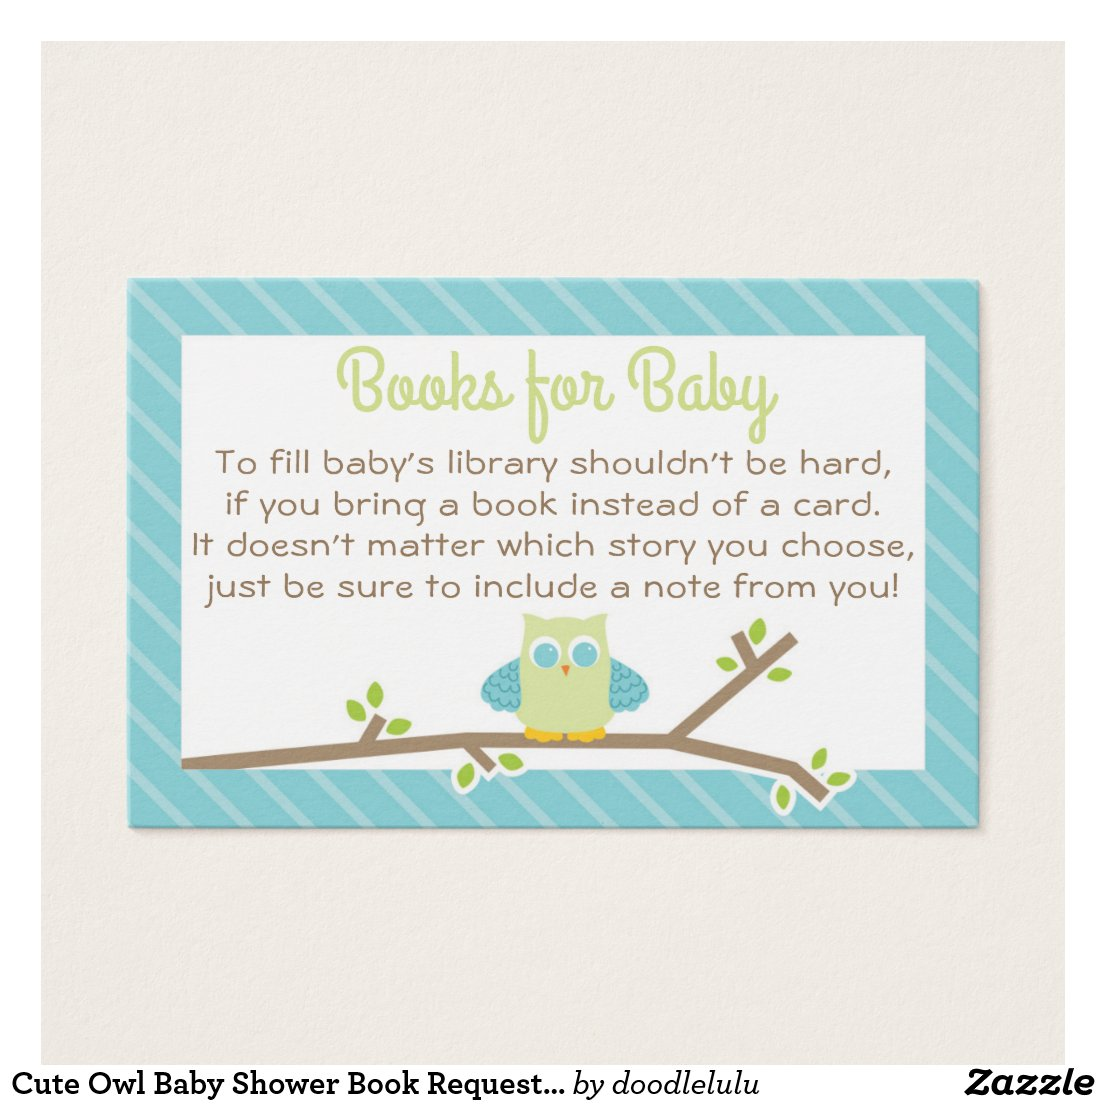 Cute Owl Baby Shower Book Request Card blue green